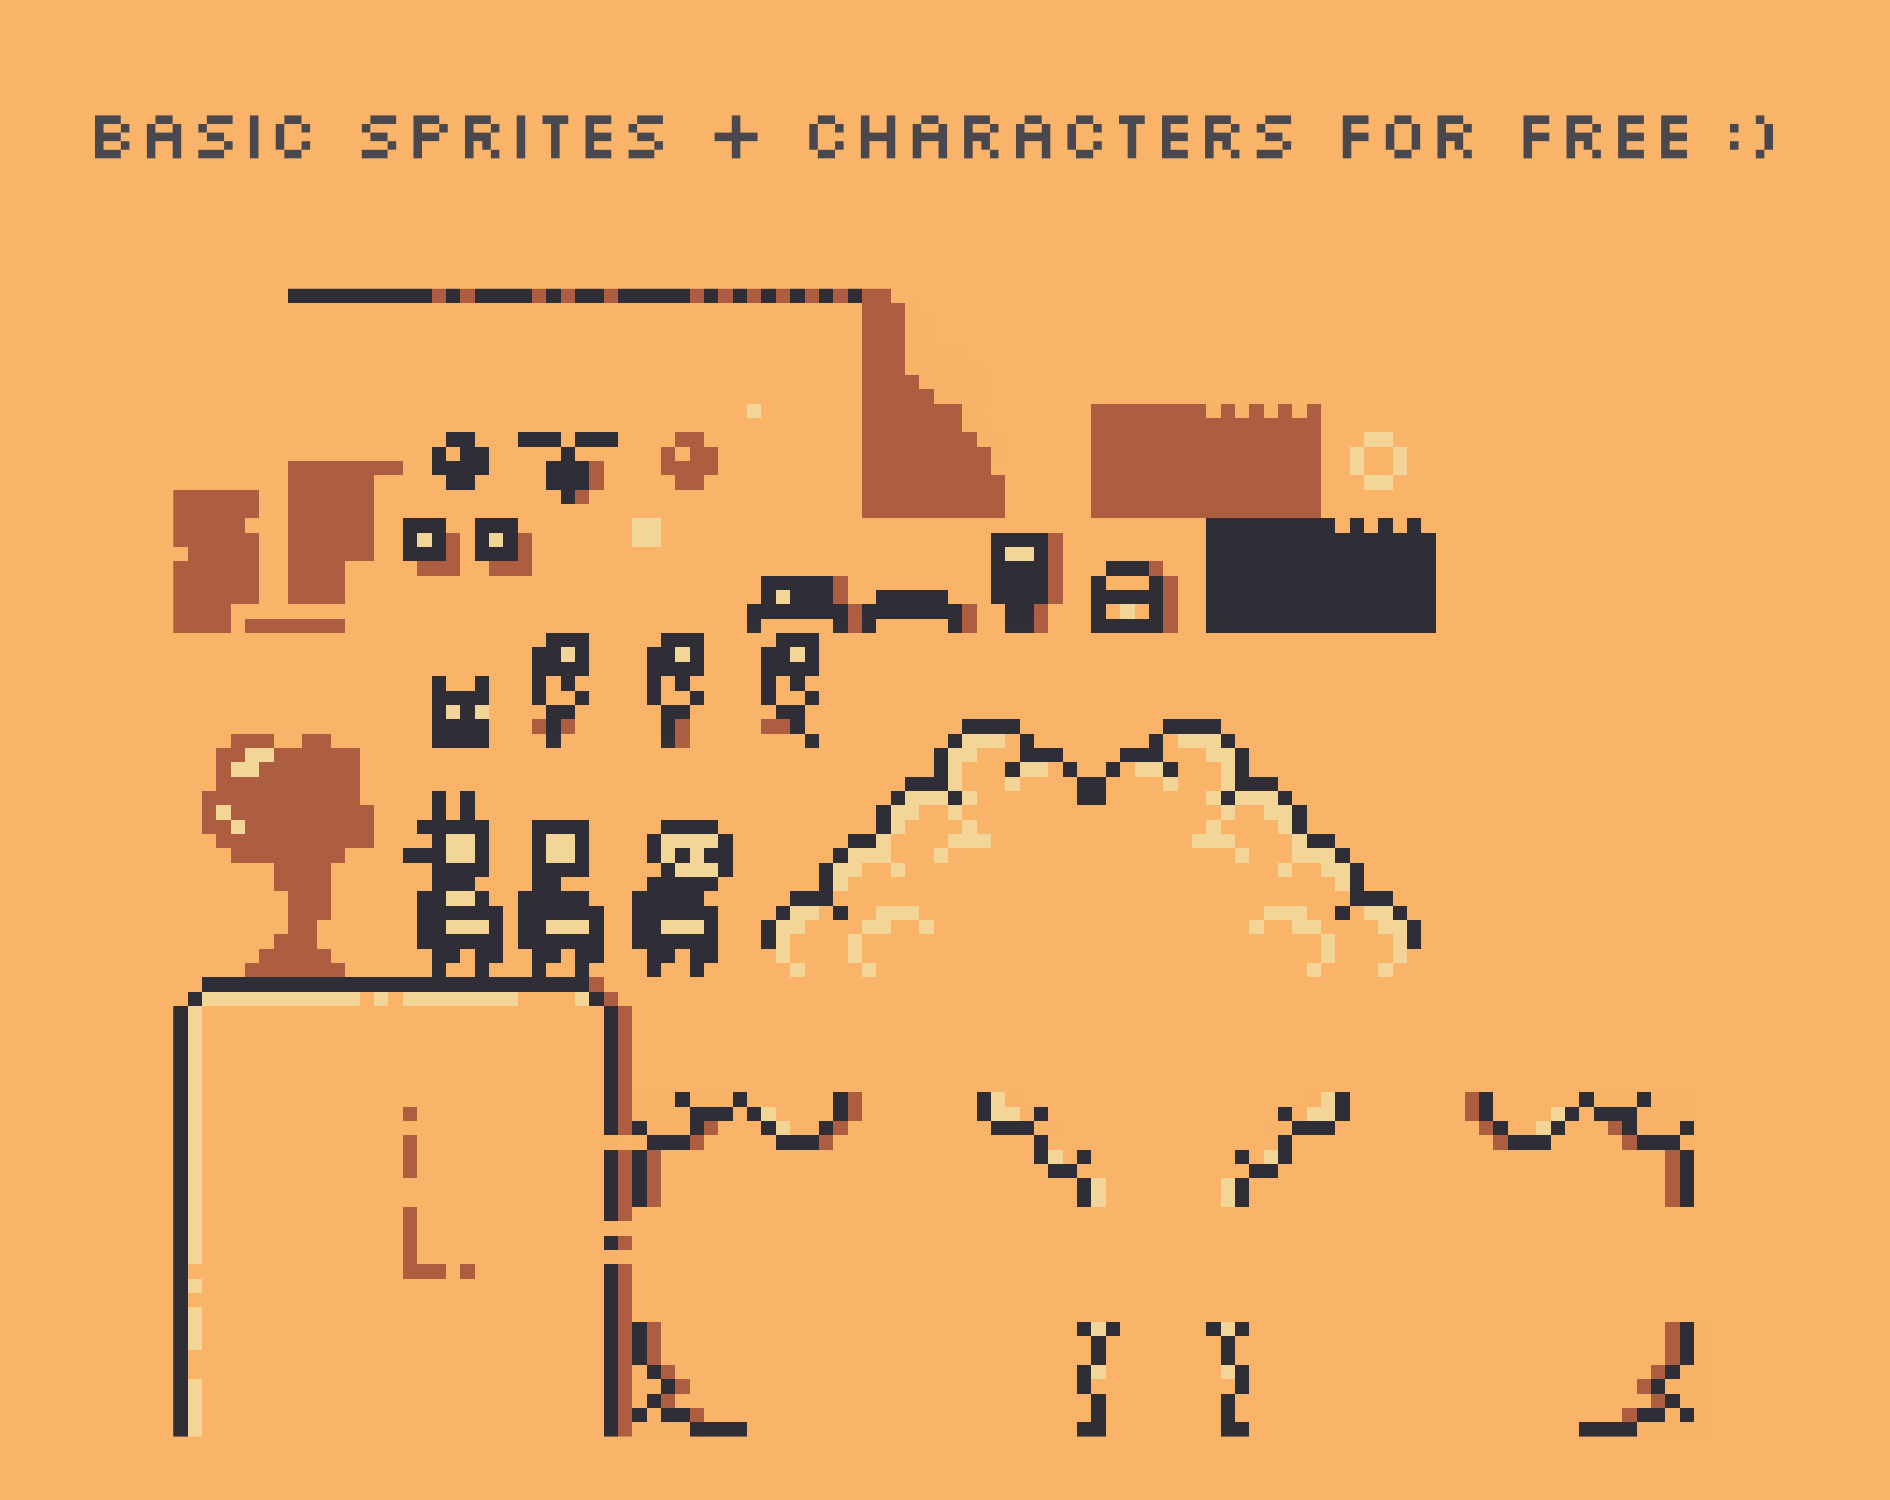 A Free 8x8 Pixelart Spritesheet For Easy Mockups Or Extension Its Non Commercial Use Also Editing Just Get In Contact